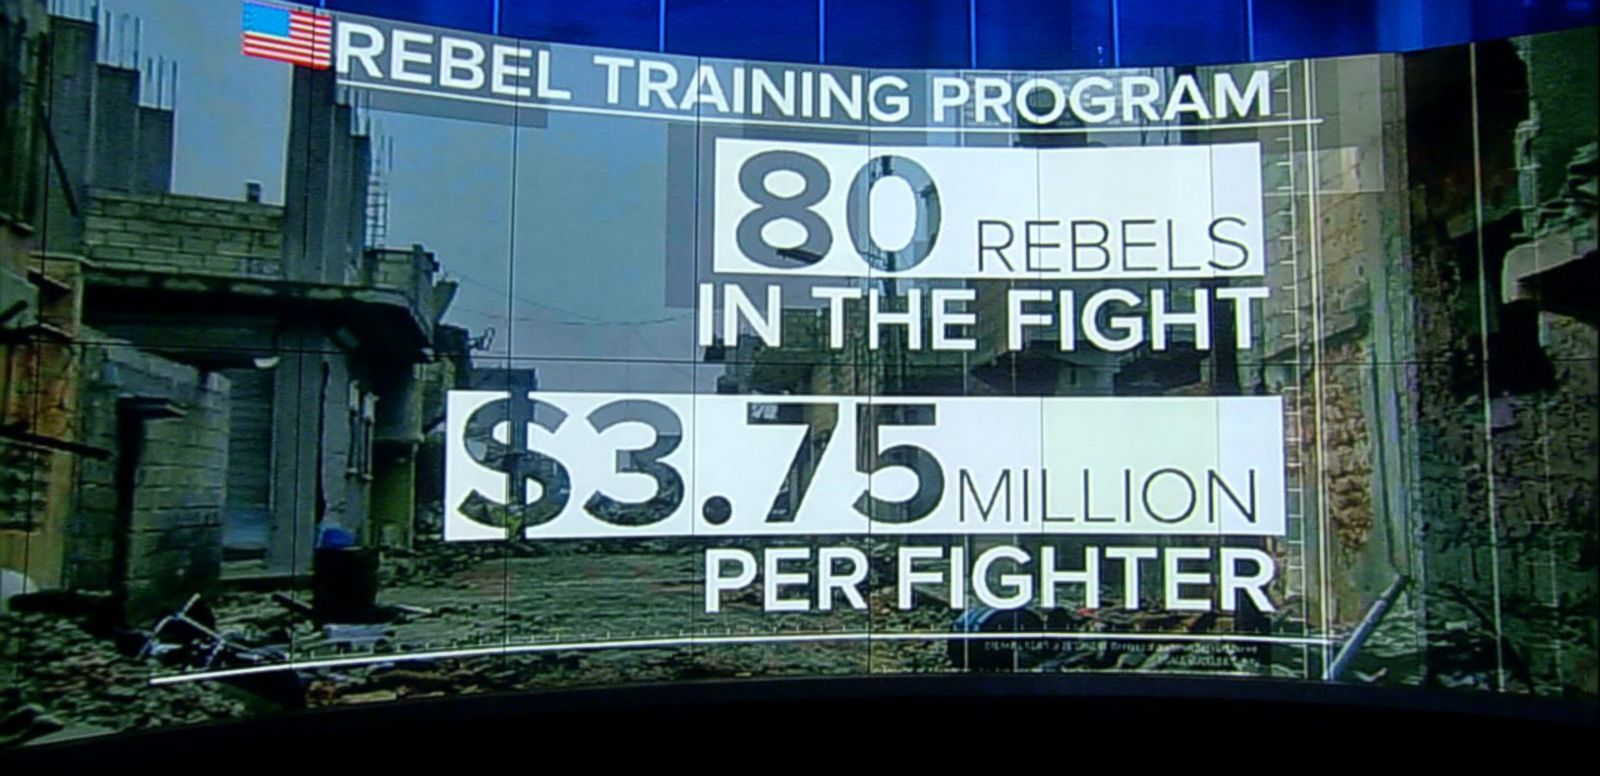 VIDEO: Half a Billion US Dollars Earmarked to Train Rebels in Syria